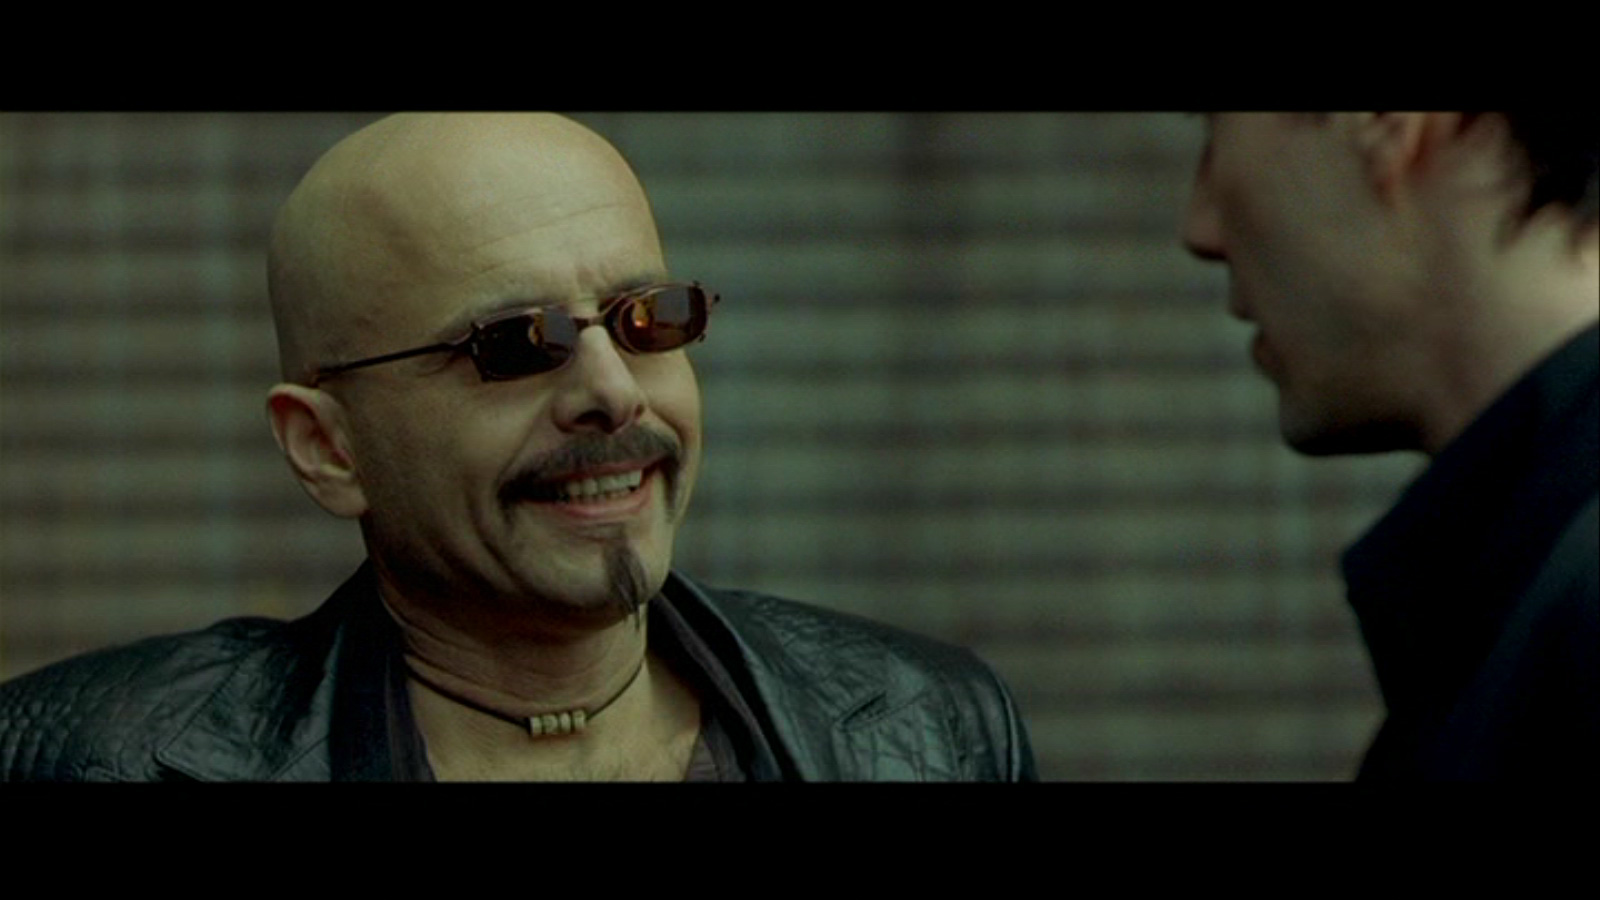 cyphers choice in the matrix If you were faced with the choice of reality vs the matrix, which would you choose and why presenting us with choice cypher is the classic betrayer lesson plan based on the matrix.